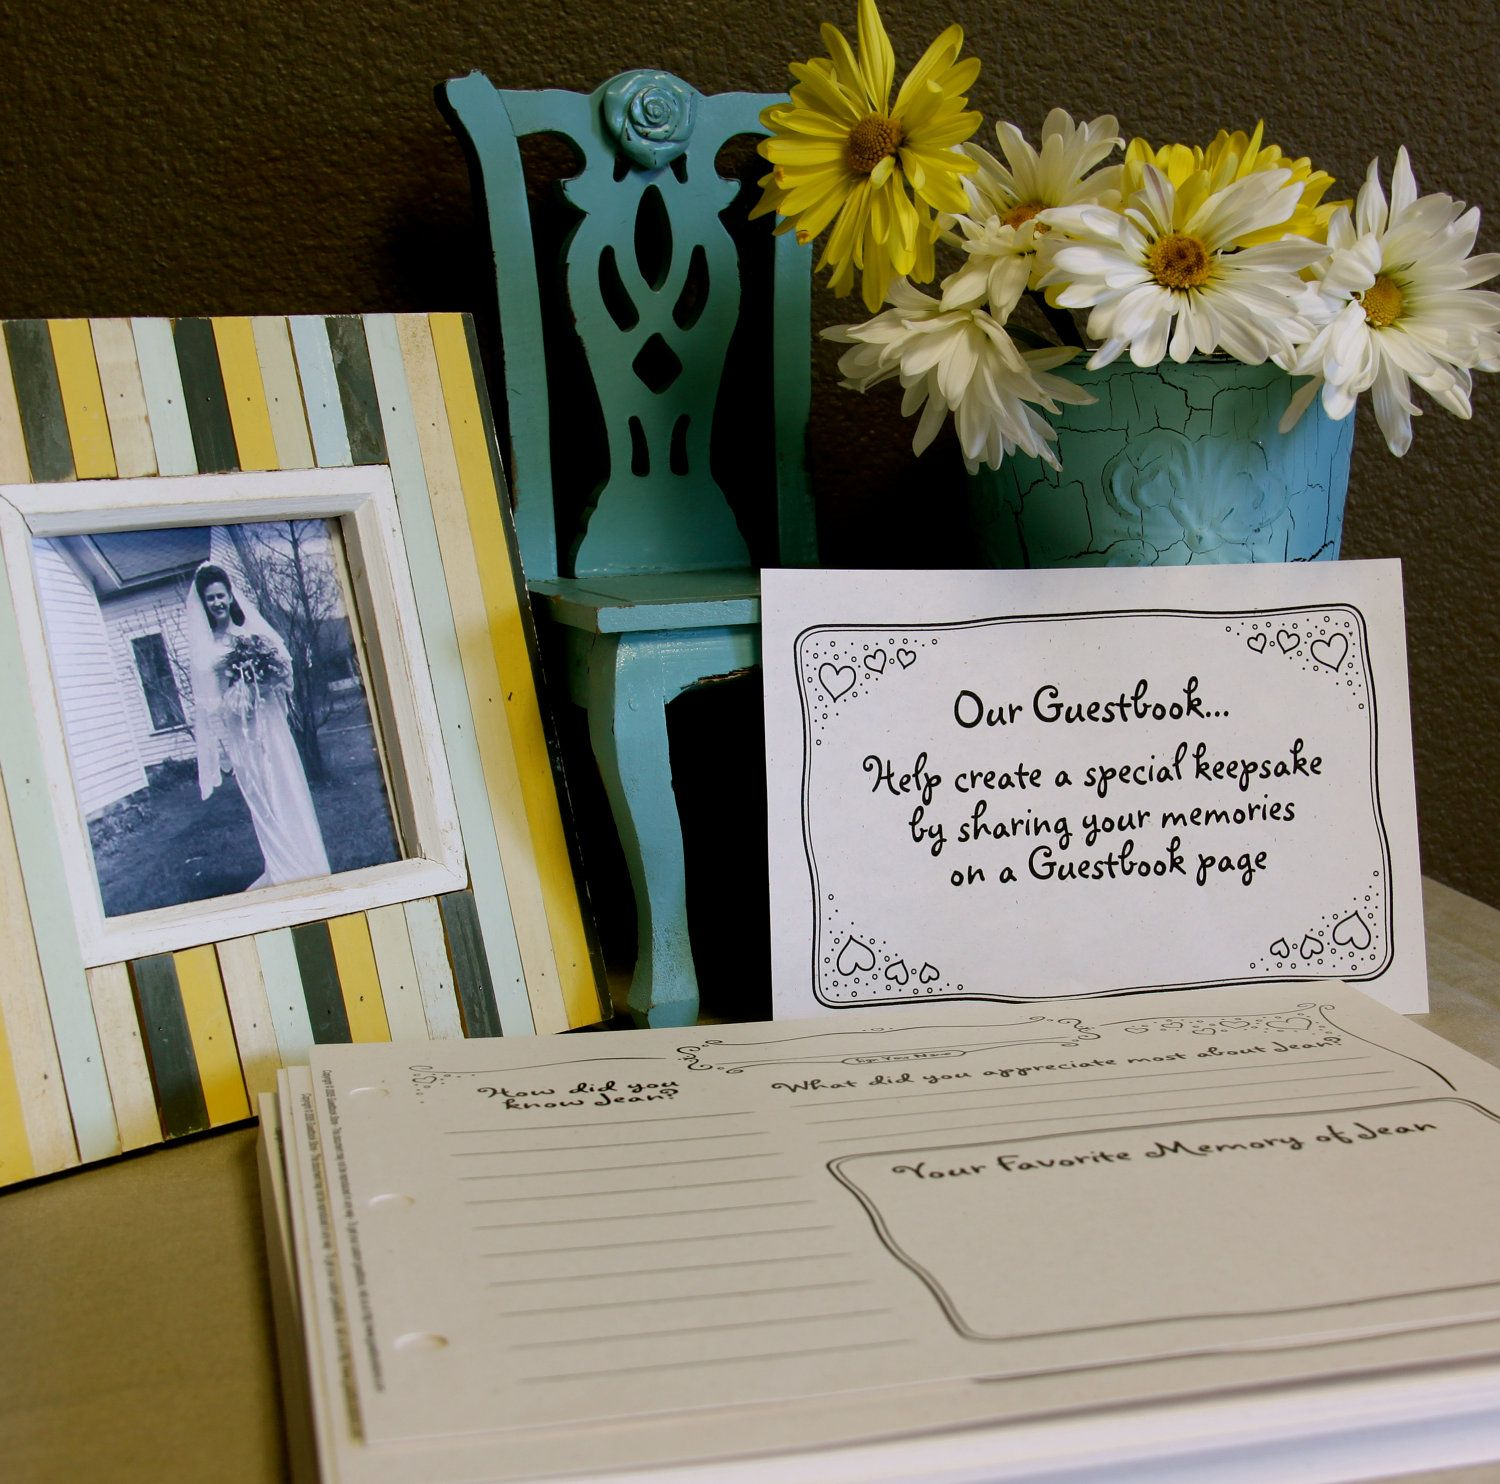 Unique Wedding Guest Book Ideas: A Unique Guest Book For Funerals